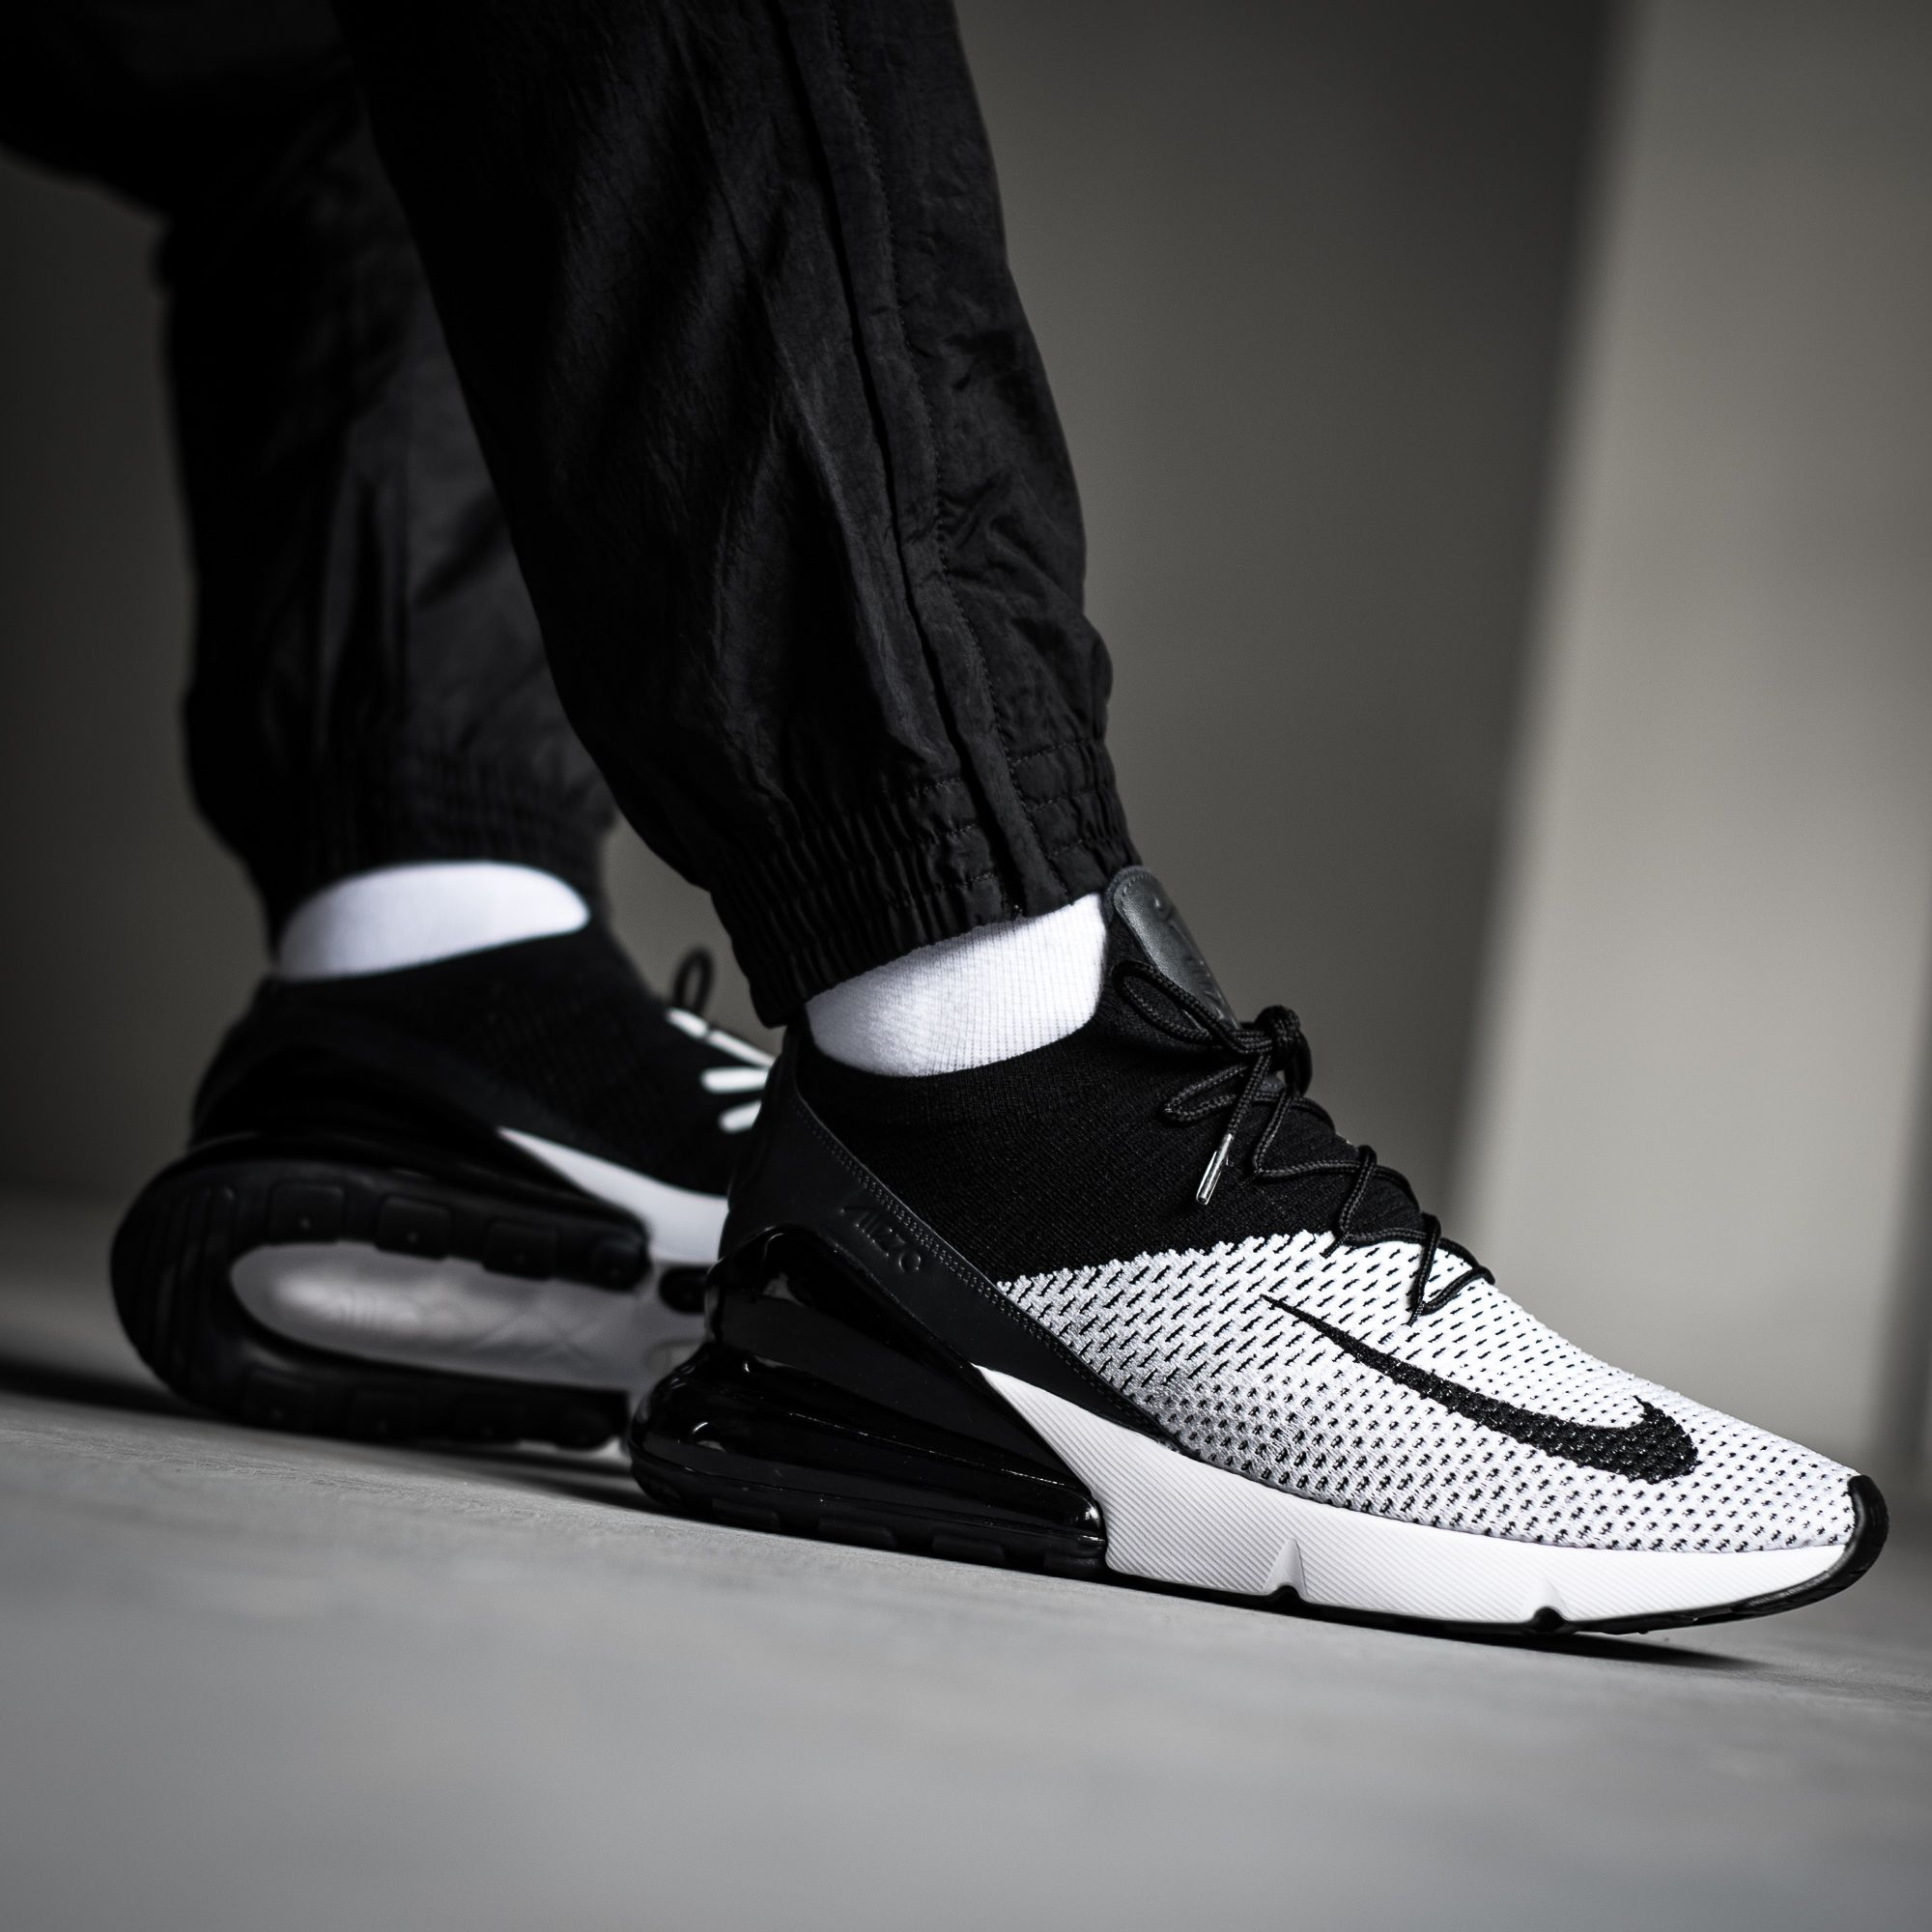 981af787e9a0 The brand-new NIKE AIR MAX 270 FLYKNIT in a white black-anthracite  colorway! Get yours on kickz.com!